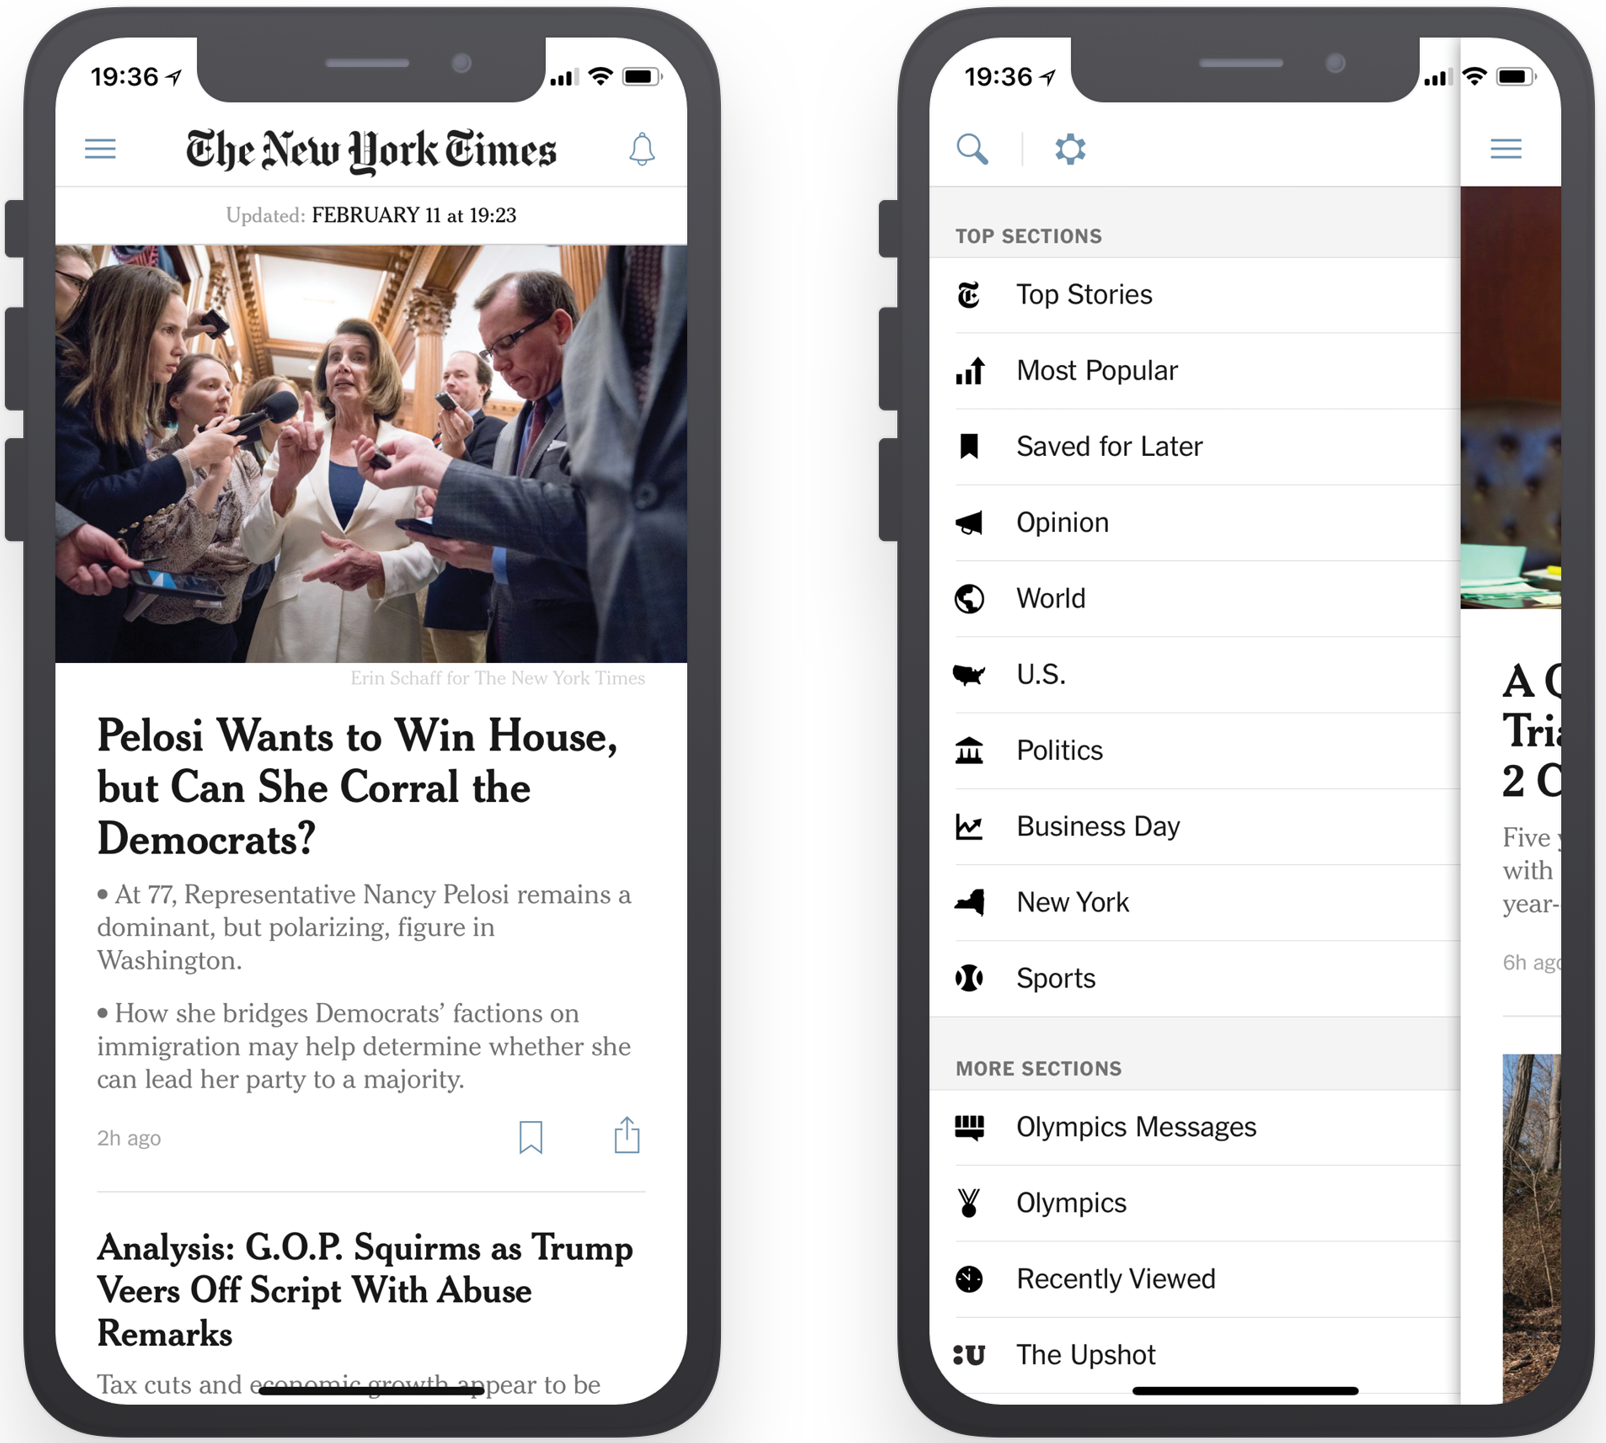 Home screen and menu of existing NYT app